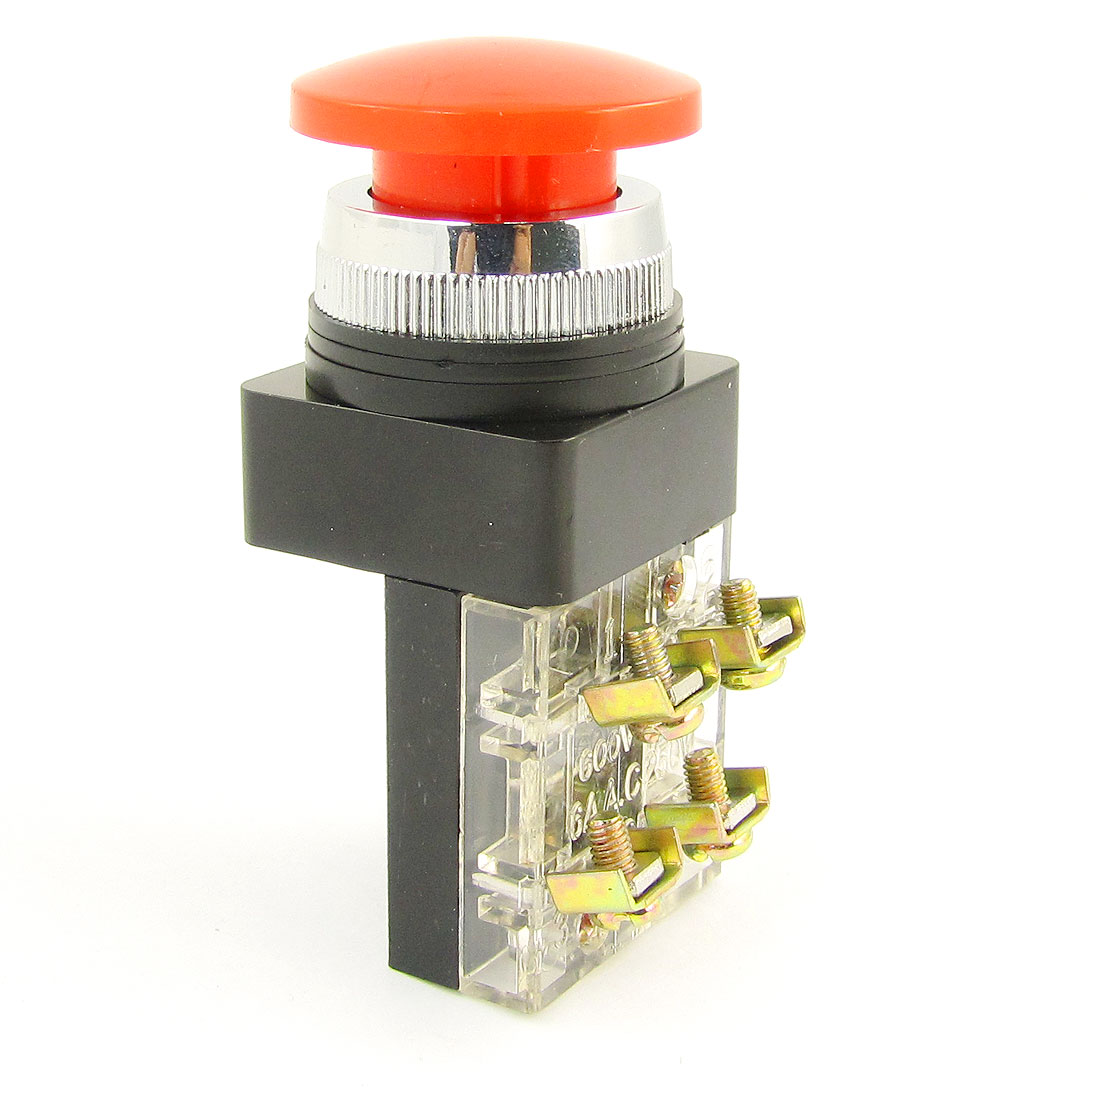 Red-Mushroom-Head-Momentary-Actuator-SPST-Push-Button-Switch-250V-AC-6Amp